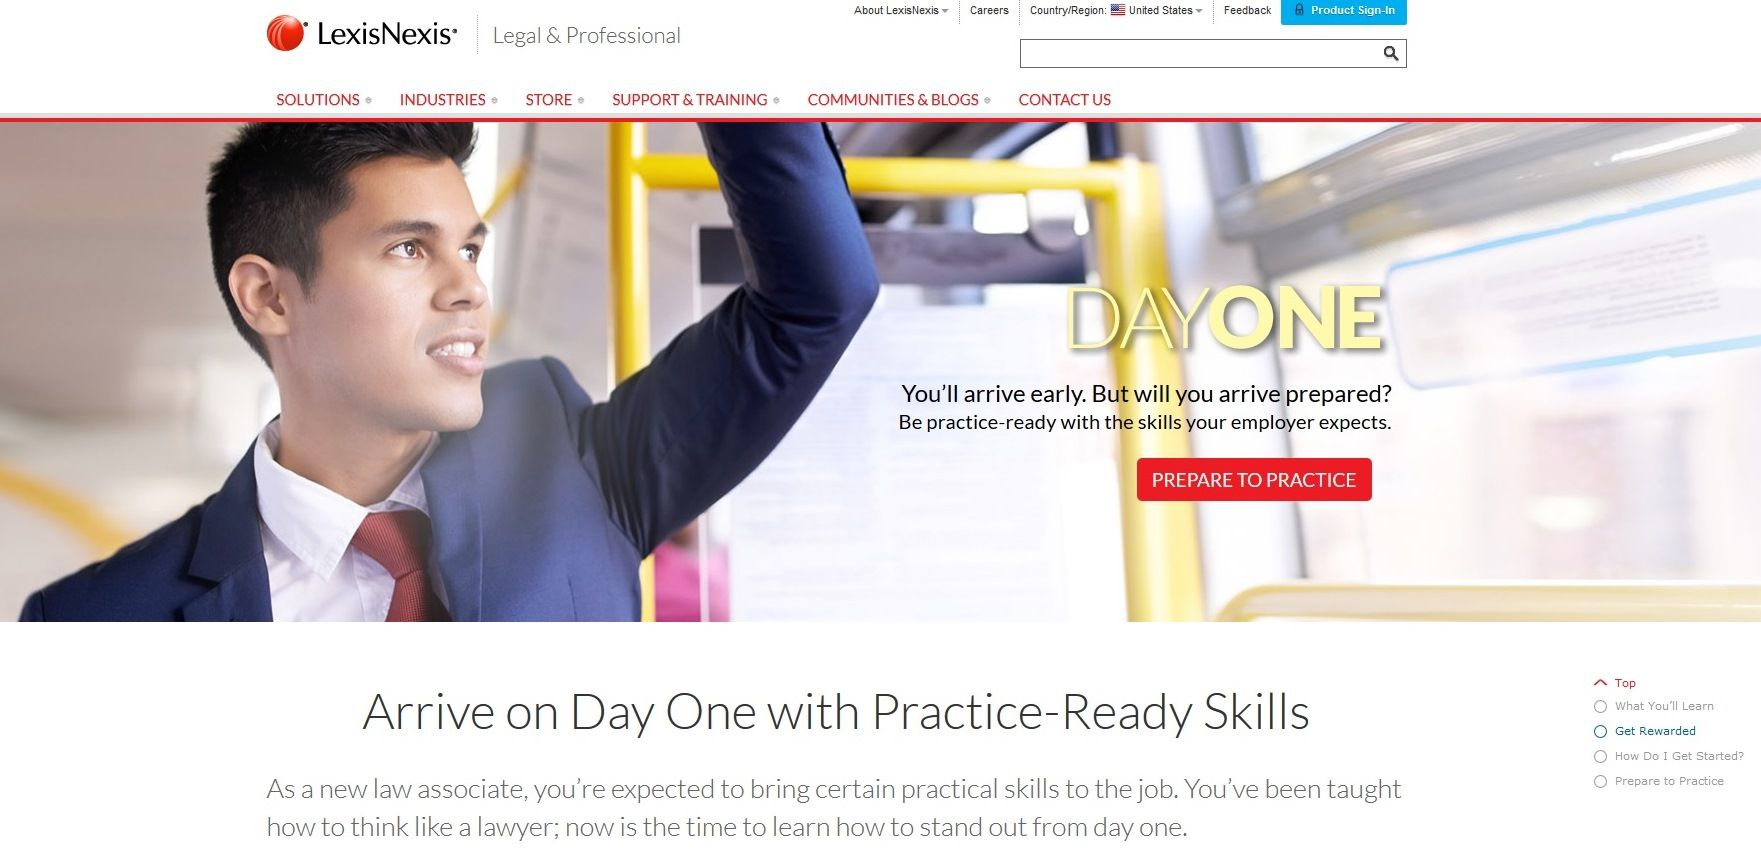 Prepare To Practice A Research Training Program From Lexisnexis